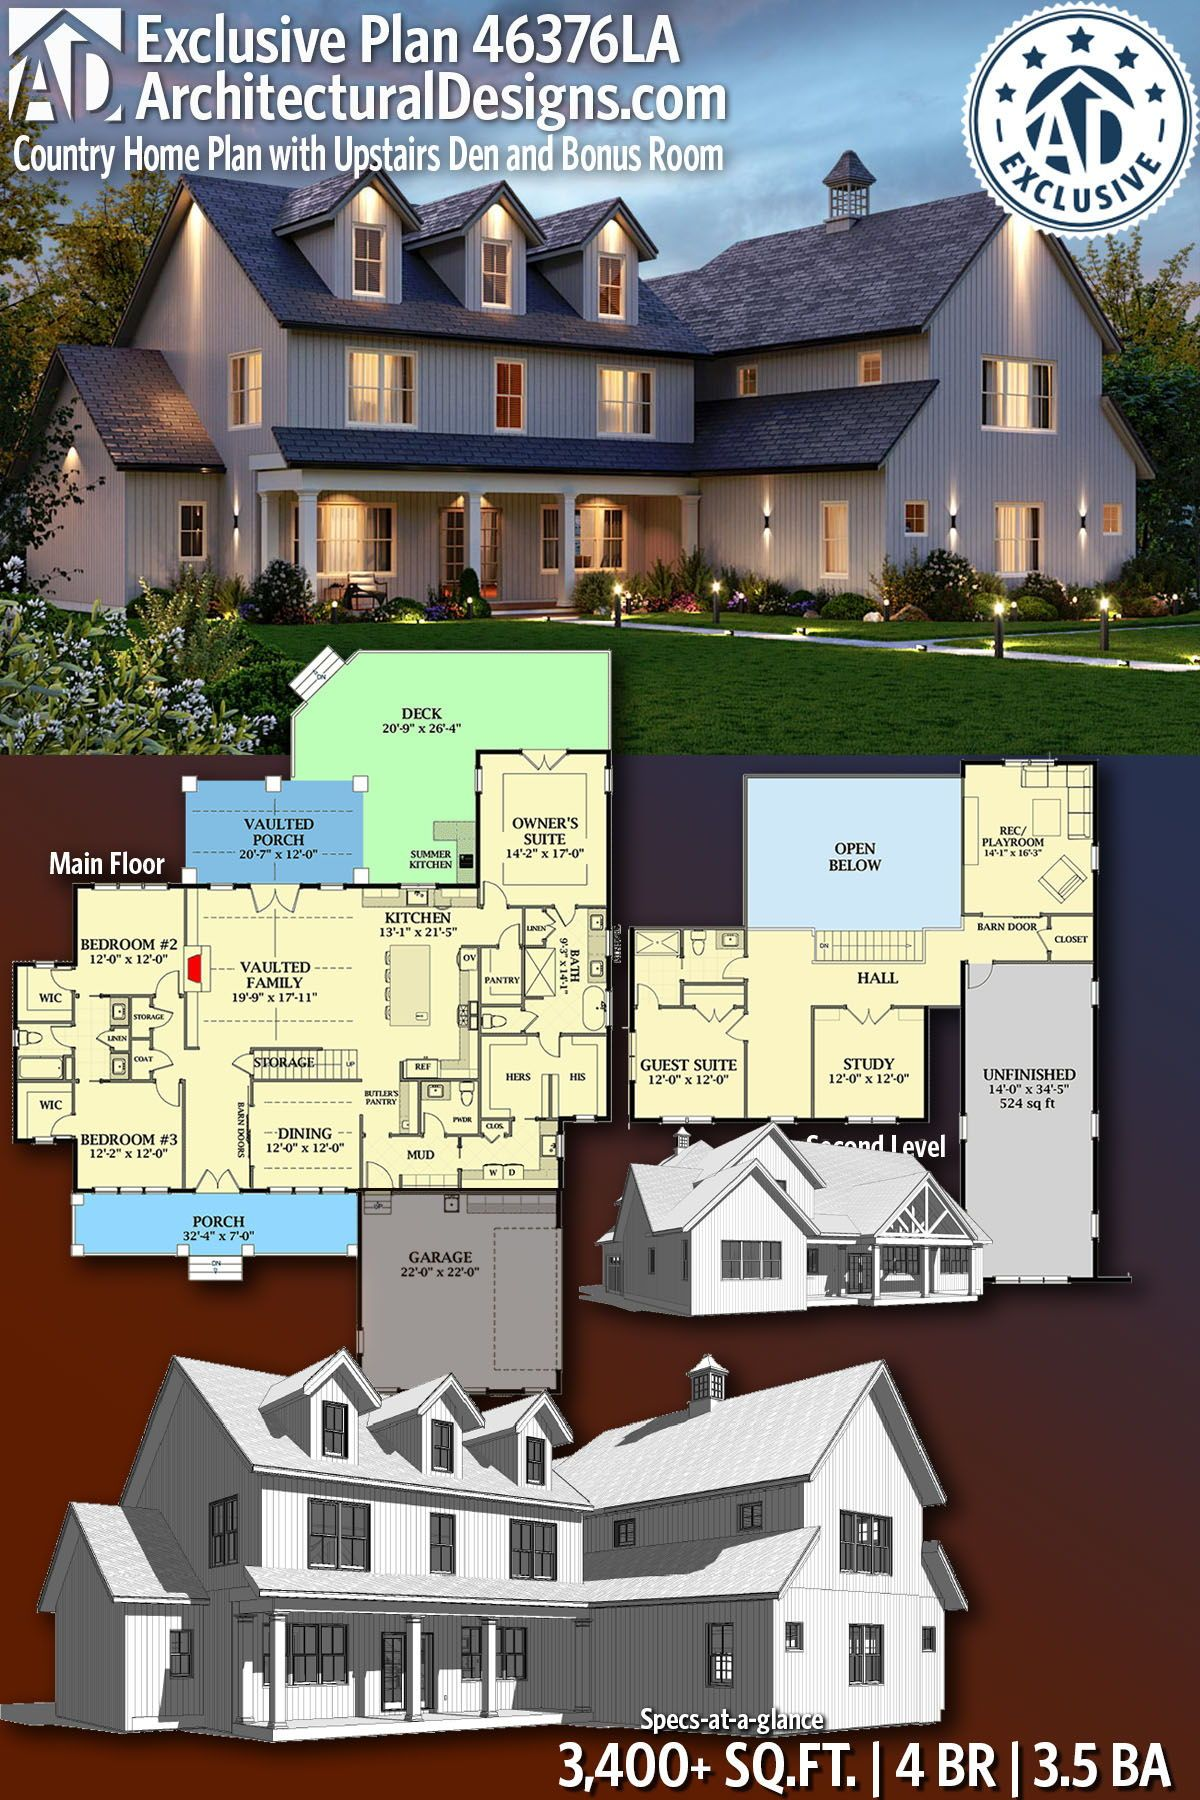 Plan 46376la Country Farmhouse Plan With Upstairs Den And Bonus Room Country House Plans Farmhouse Plans House Plans Farmhouse